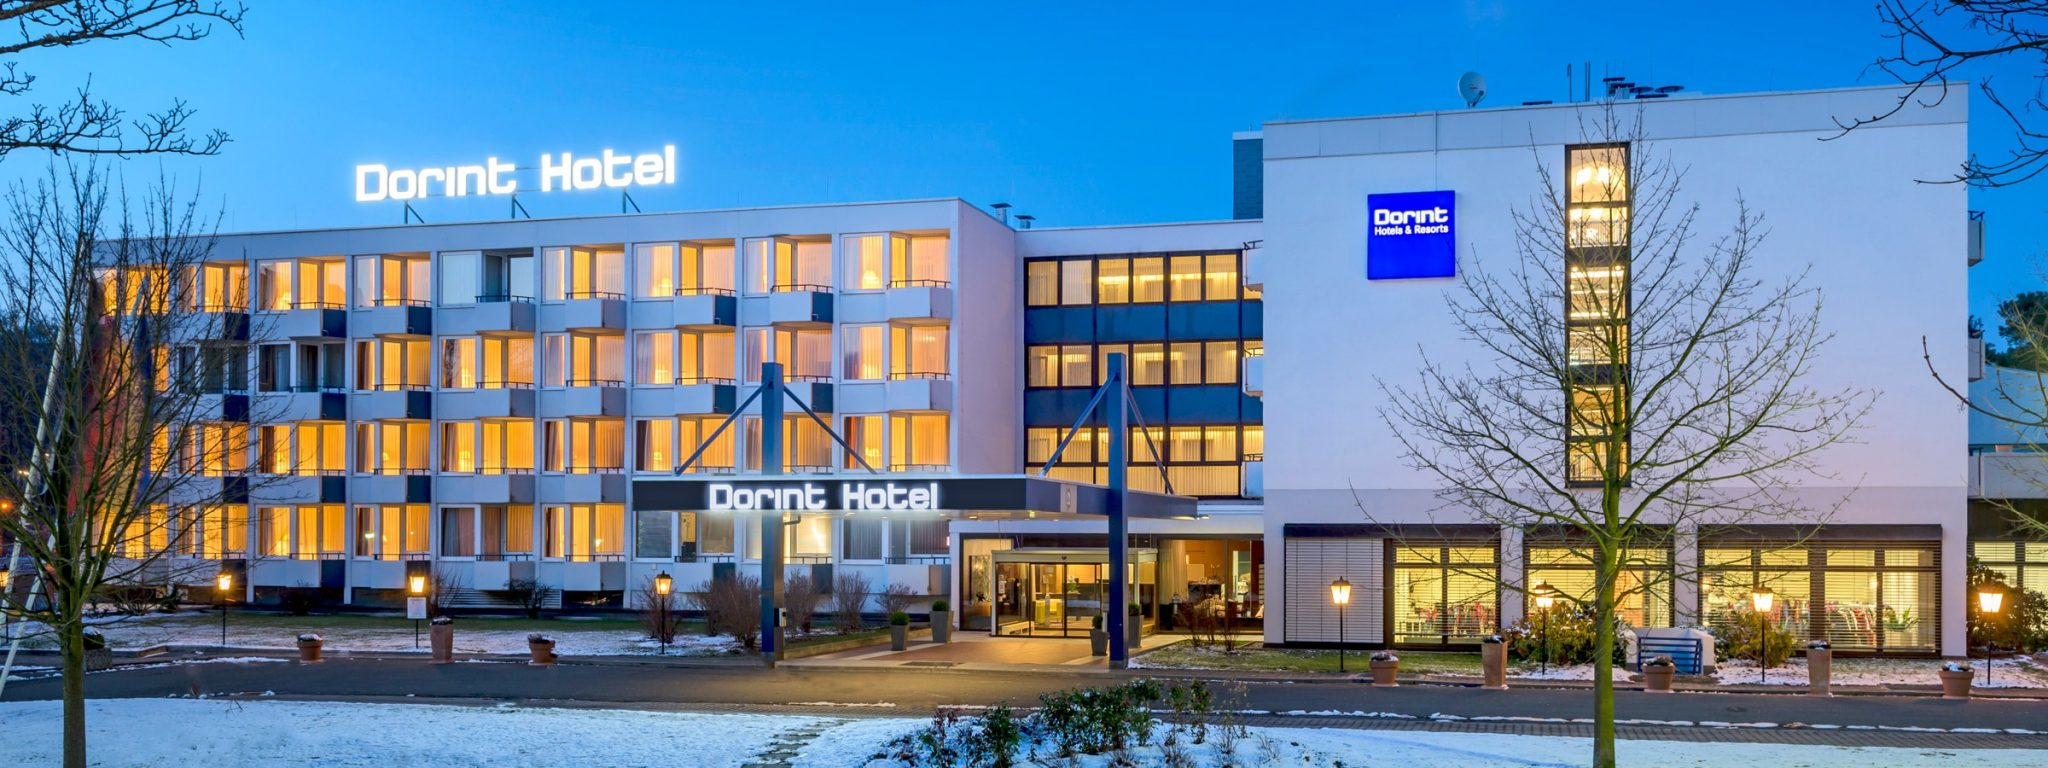 Dorint hotel kaiserslautern business hotels dorint for Designhotel mannheim